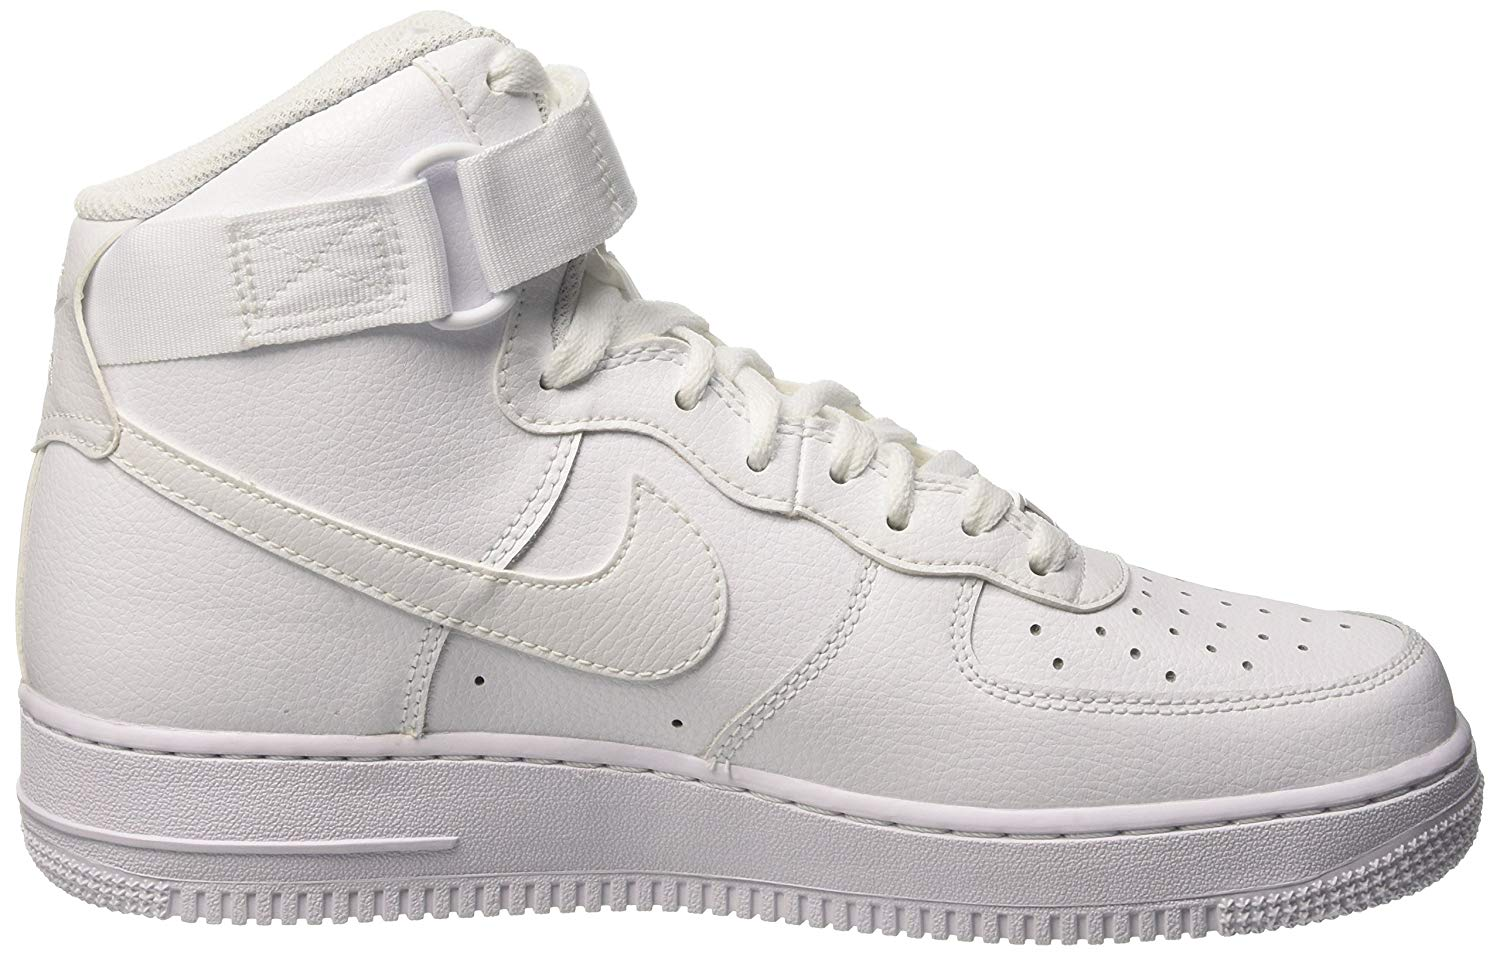 reputable site 6c5d2 9209a Nike Air Force 1 High Top Review